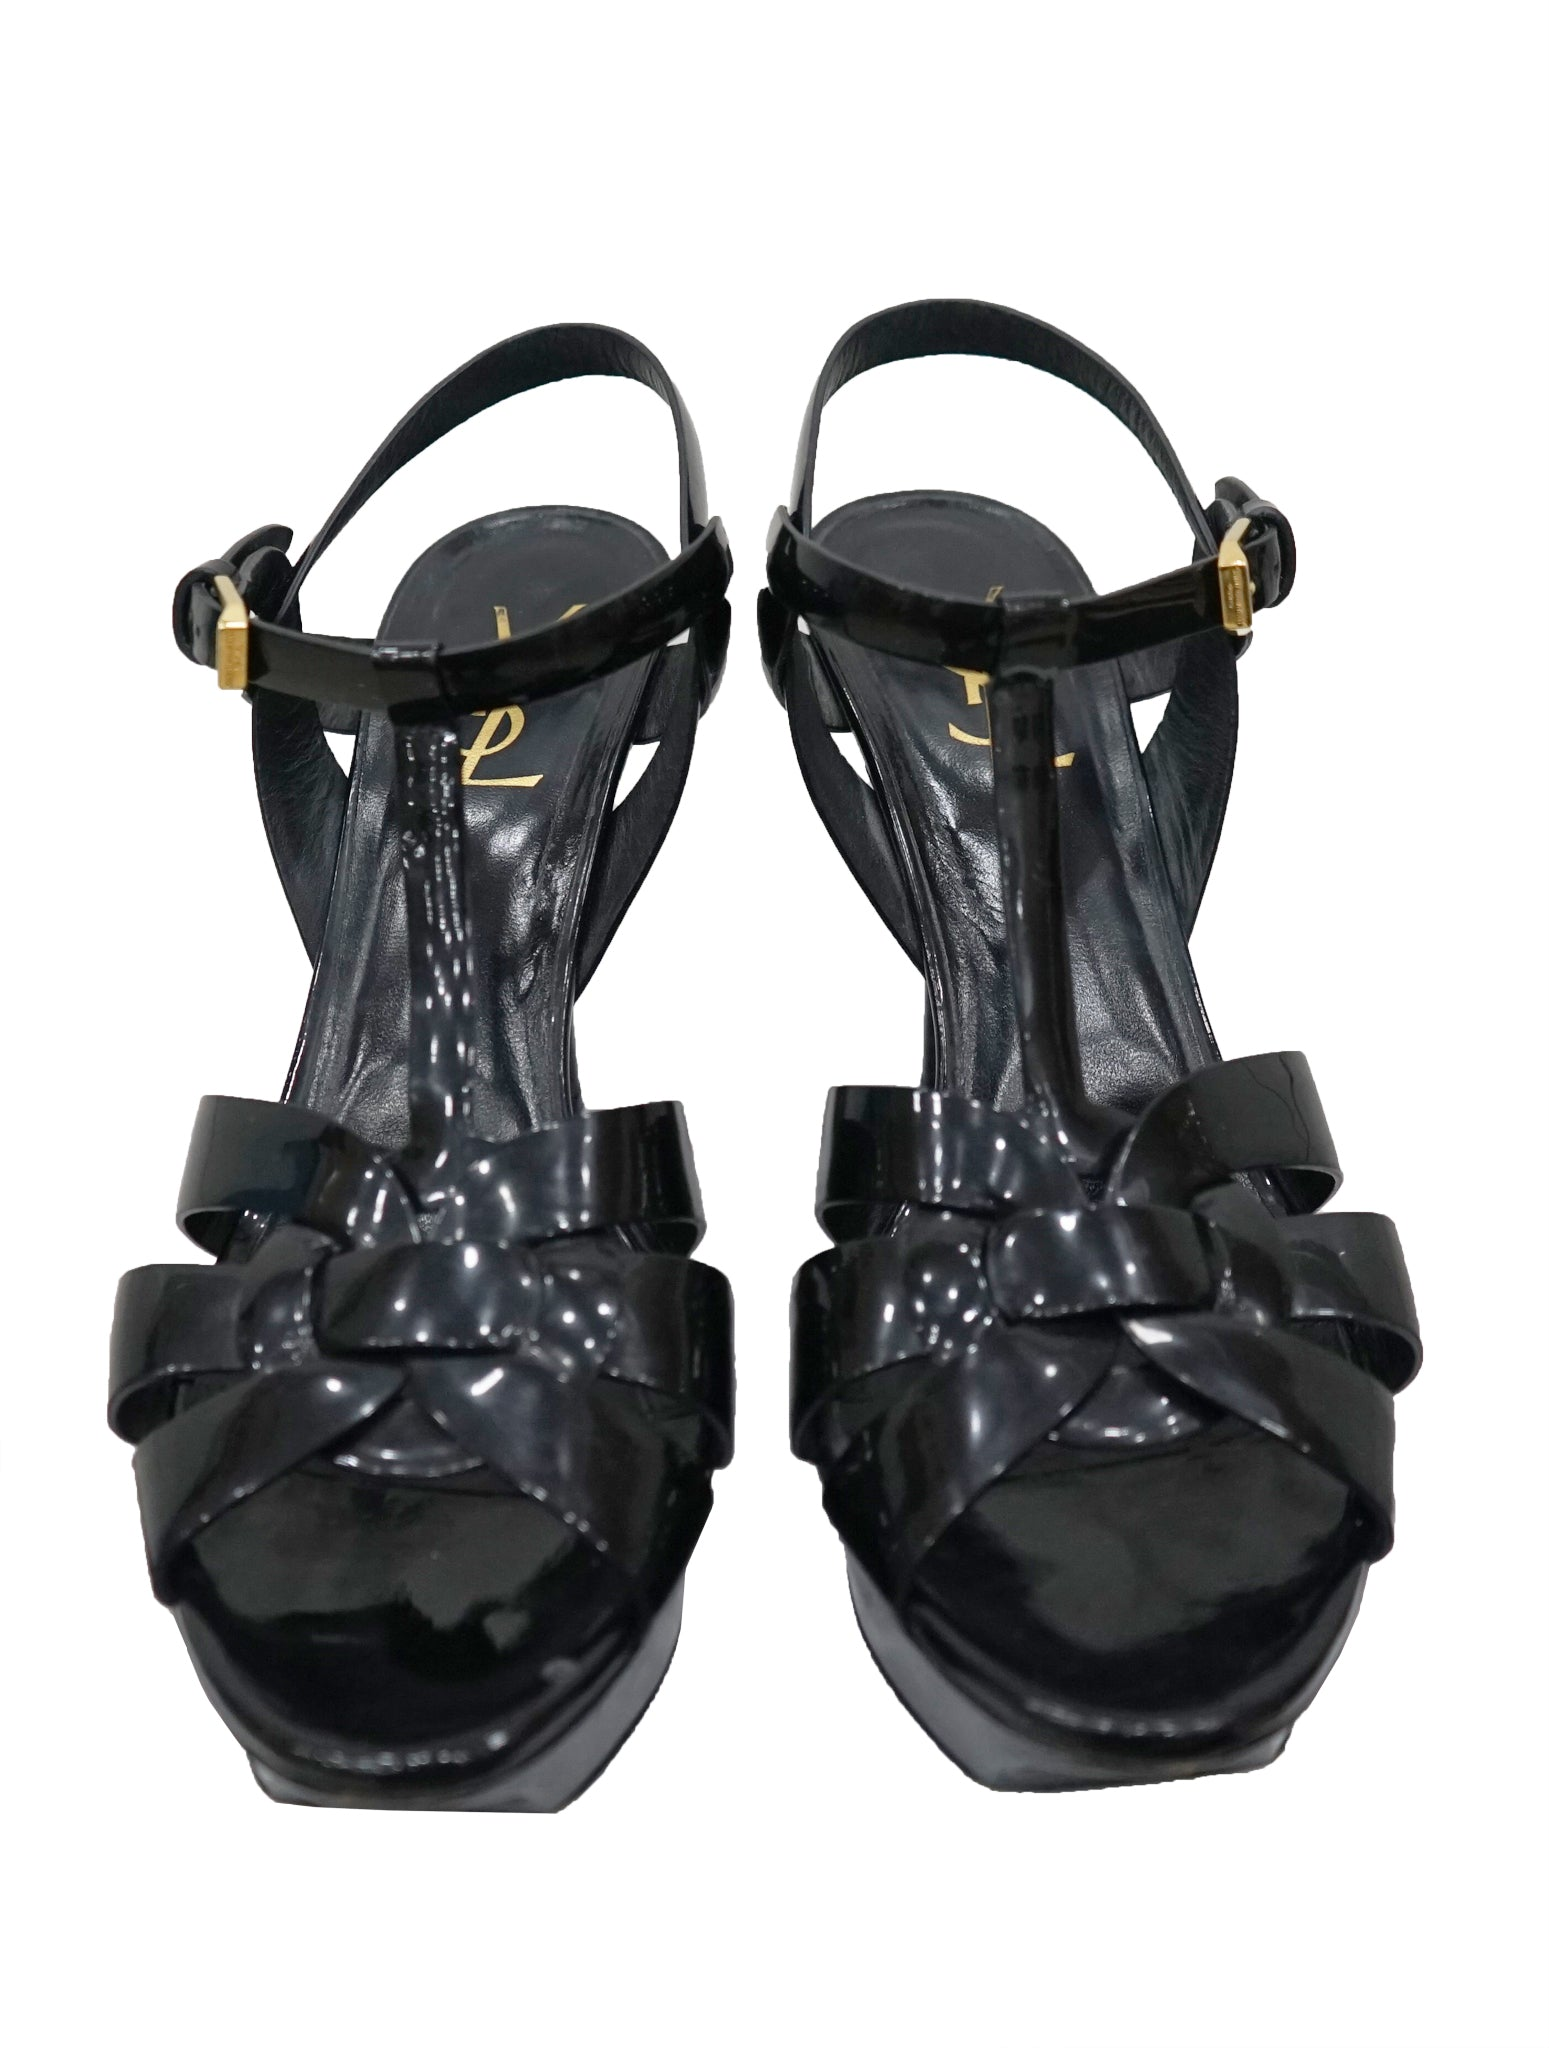 BLACK PATENT LEATHER TRIBUTE SANDALS